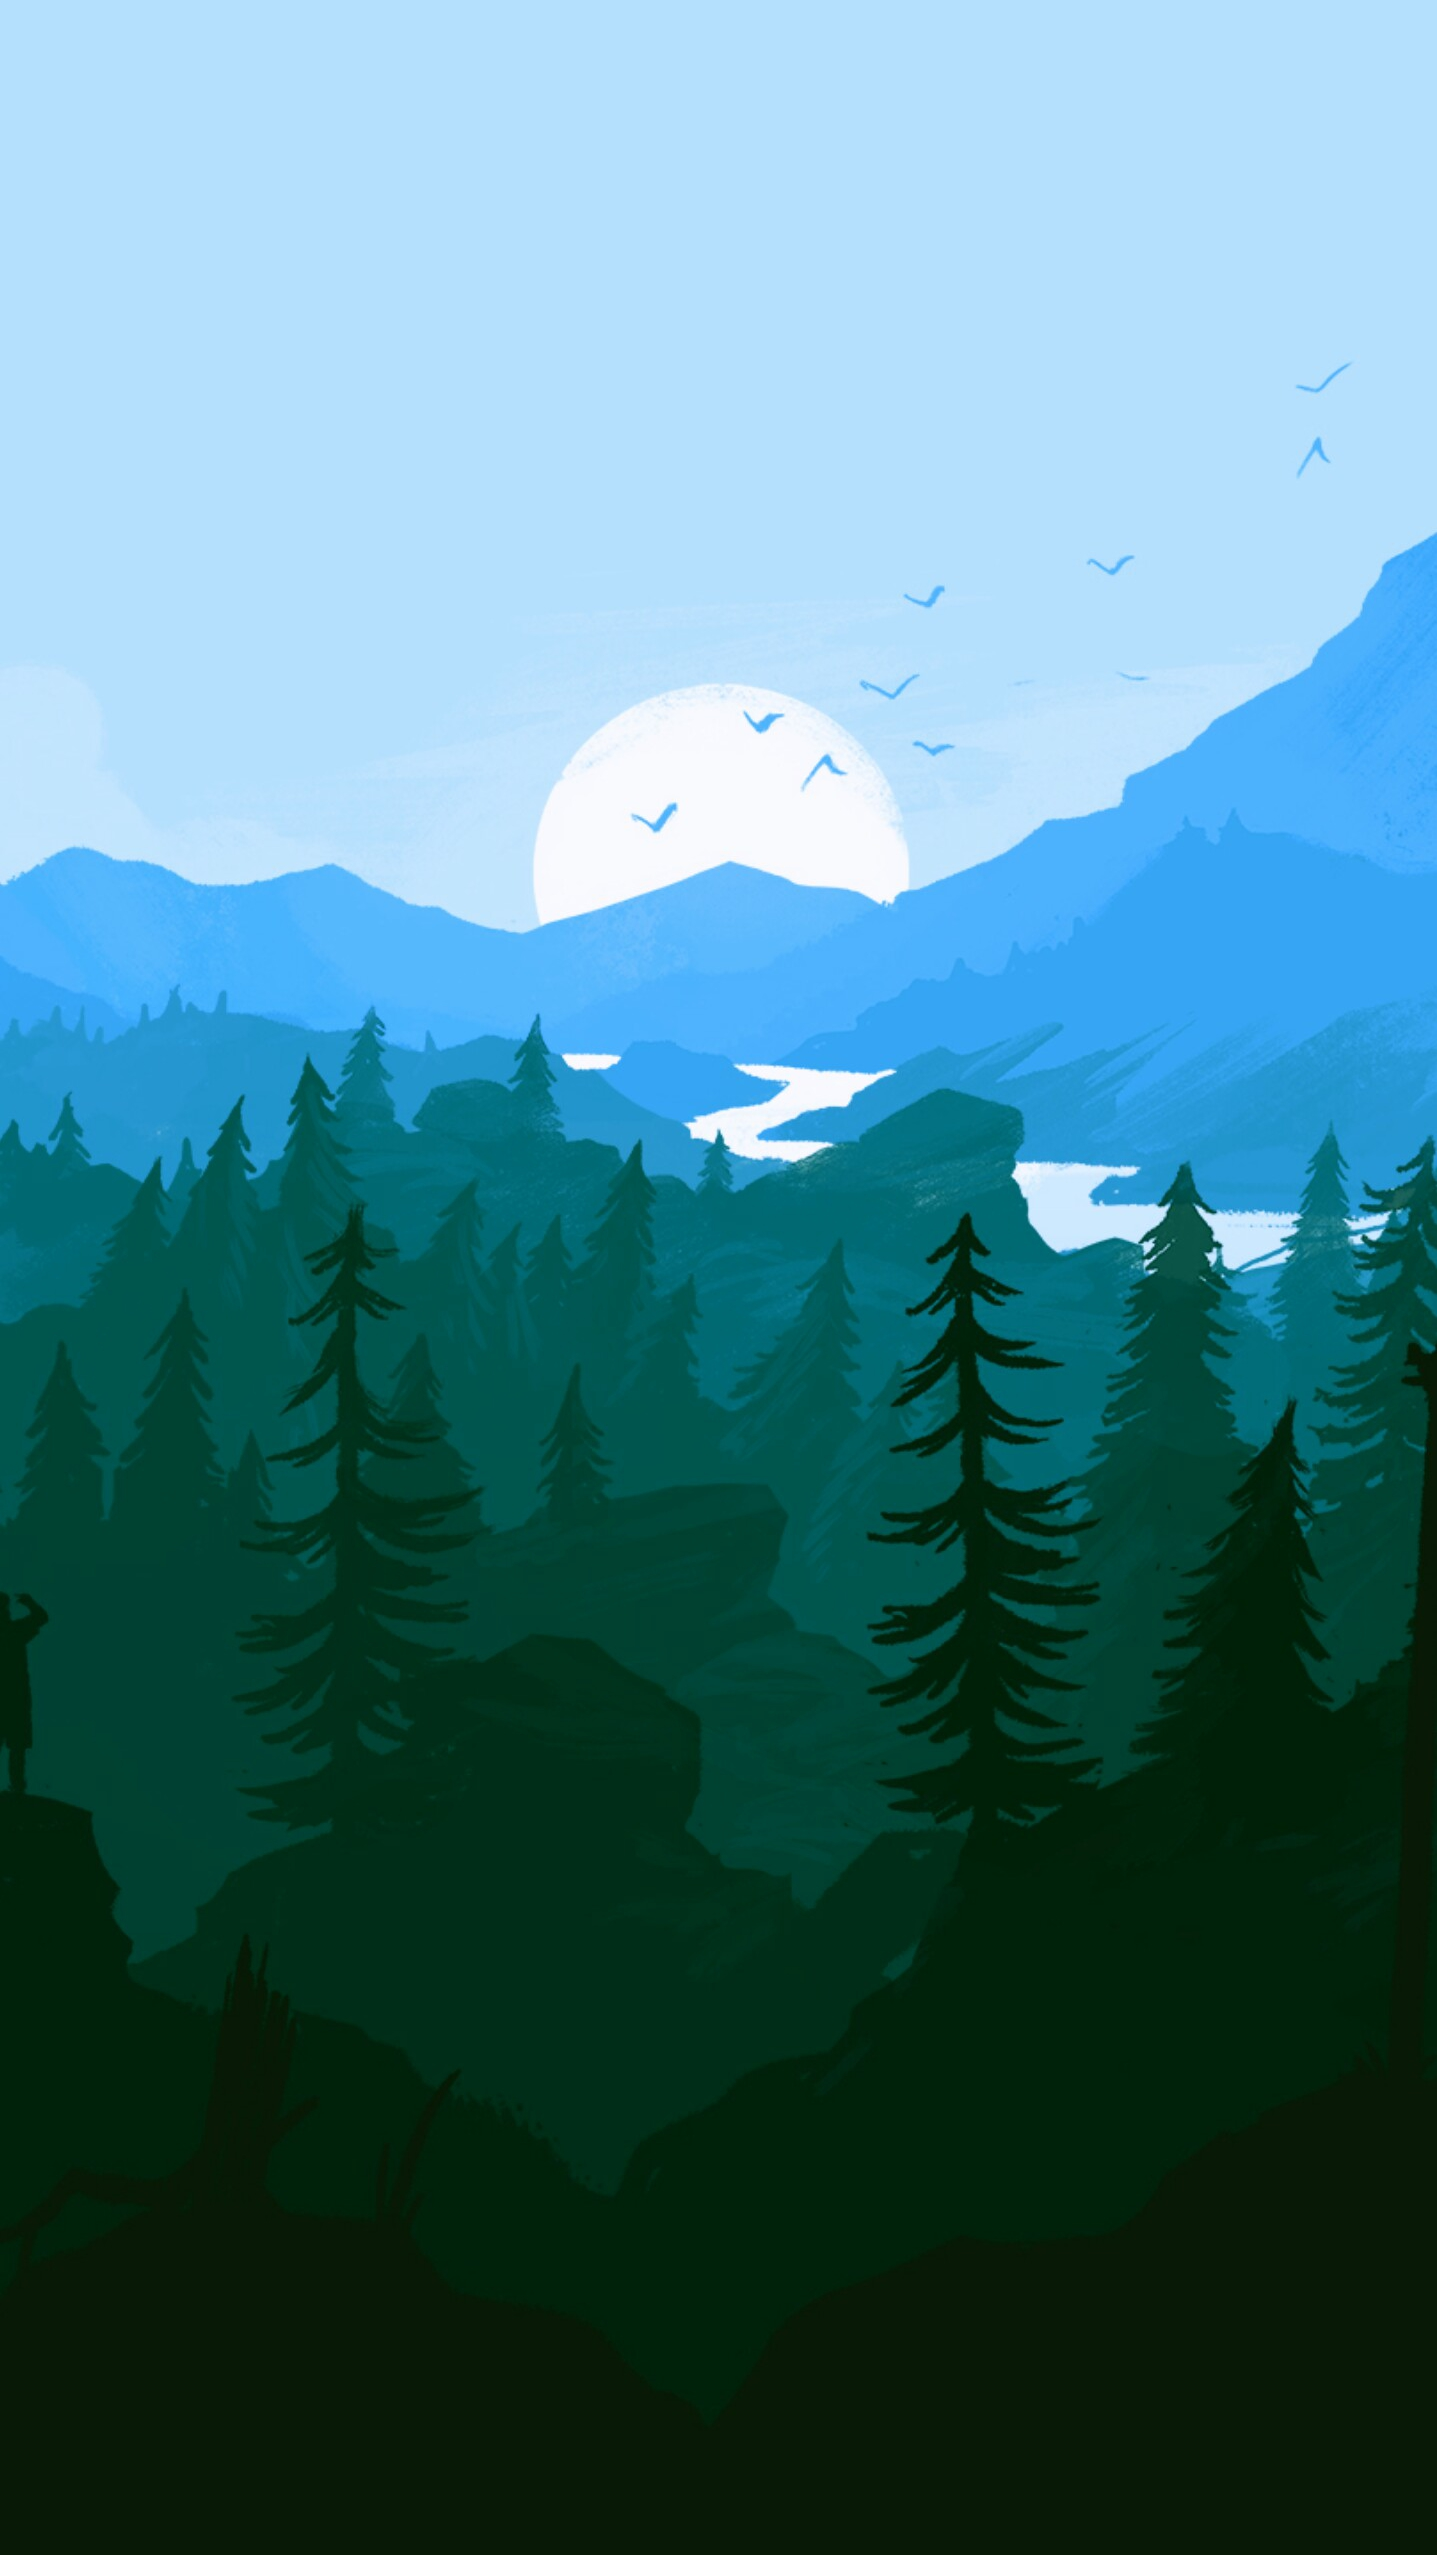 The Gravity Falls Wallpapers Artistic Sunrise Scenery Mountains Iphone Wallpaper